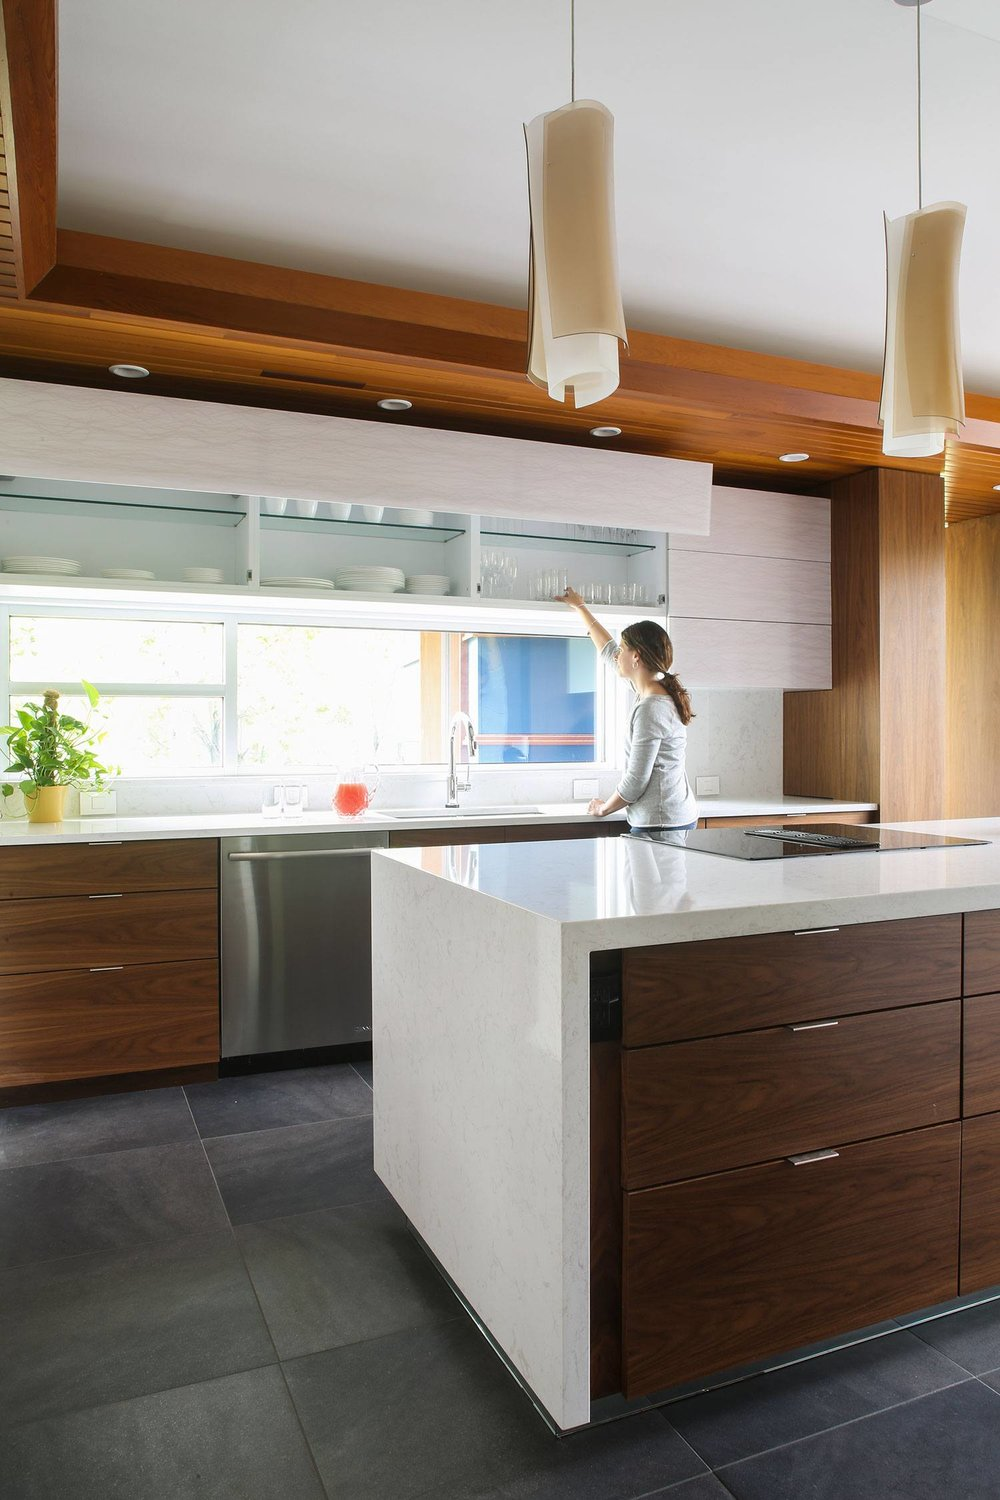 lake-house-kitchen-water-treatment-system.jpg